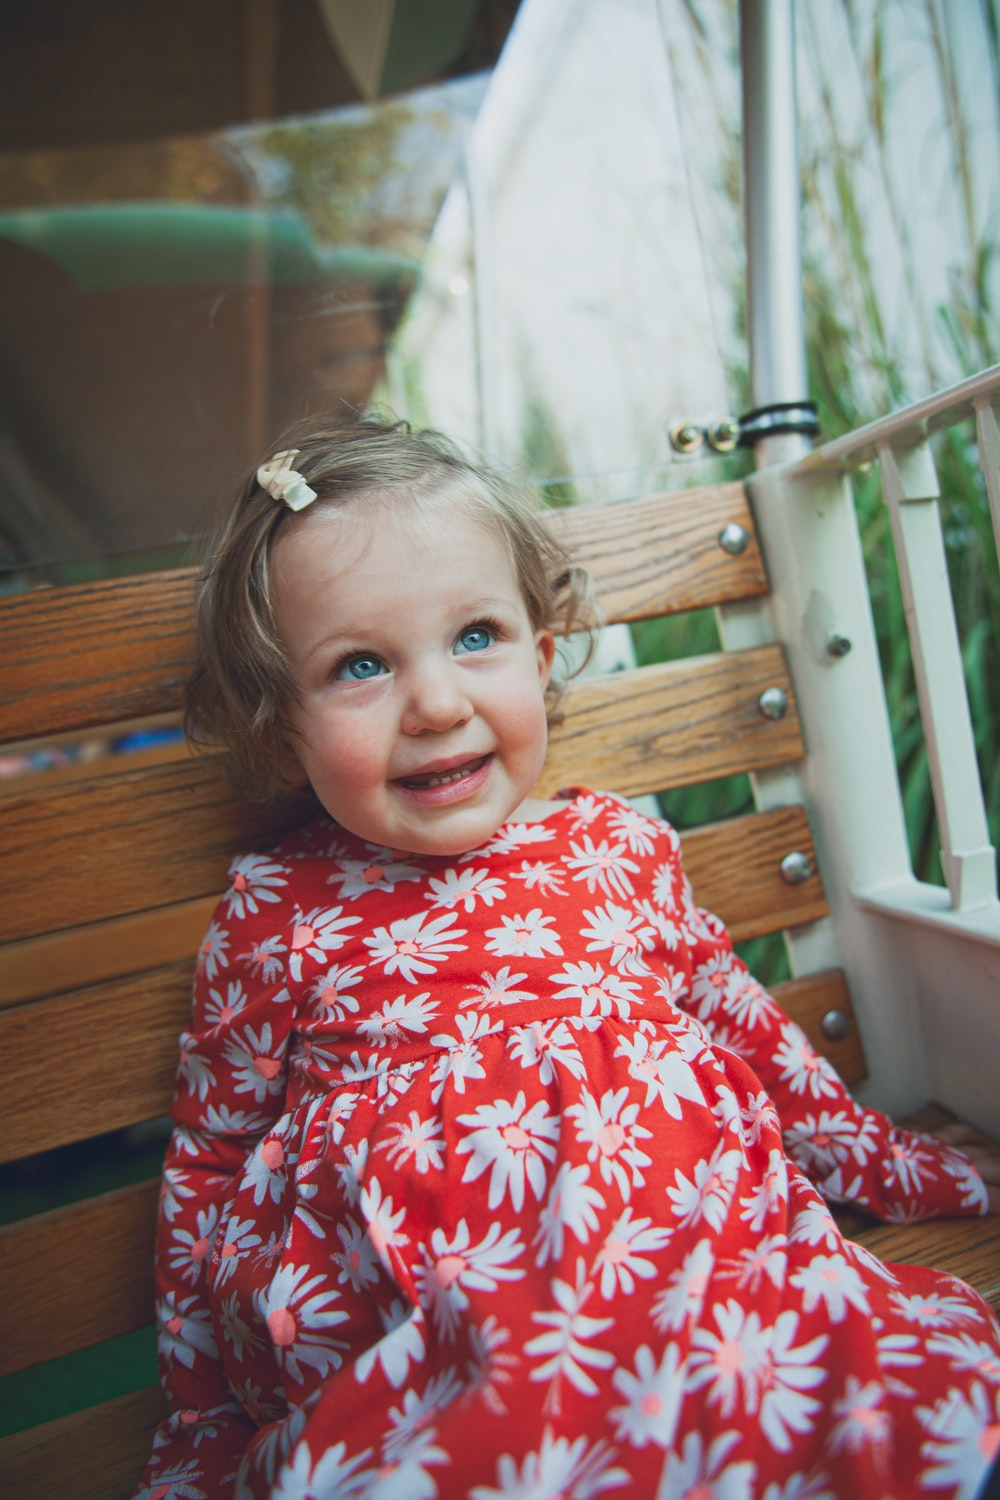 girl in red and white floral dress sitting on brown wooden bench